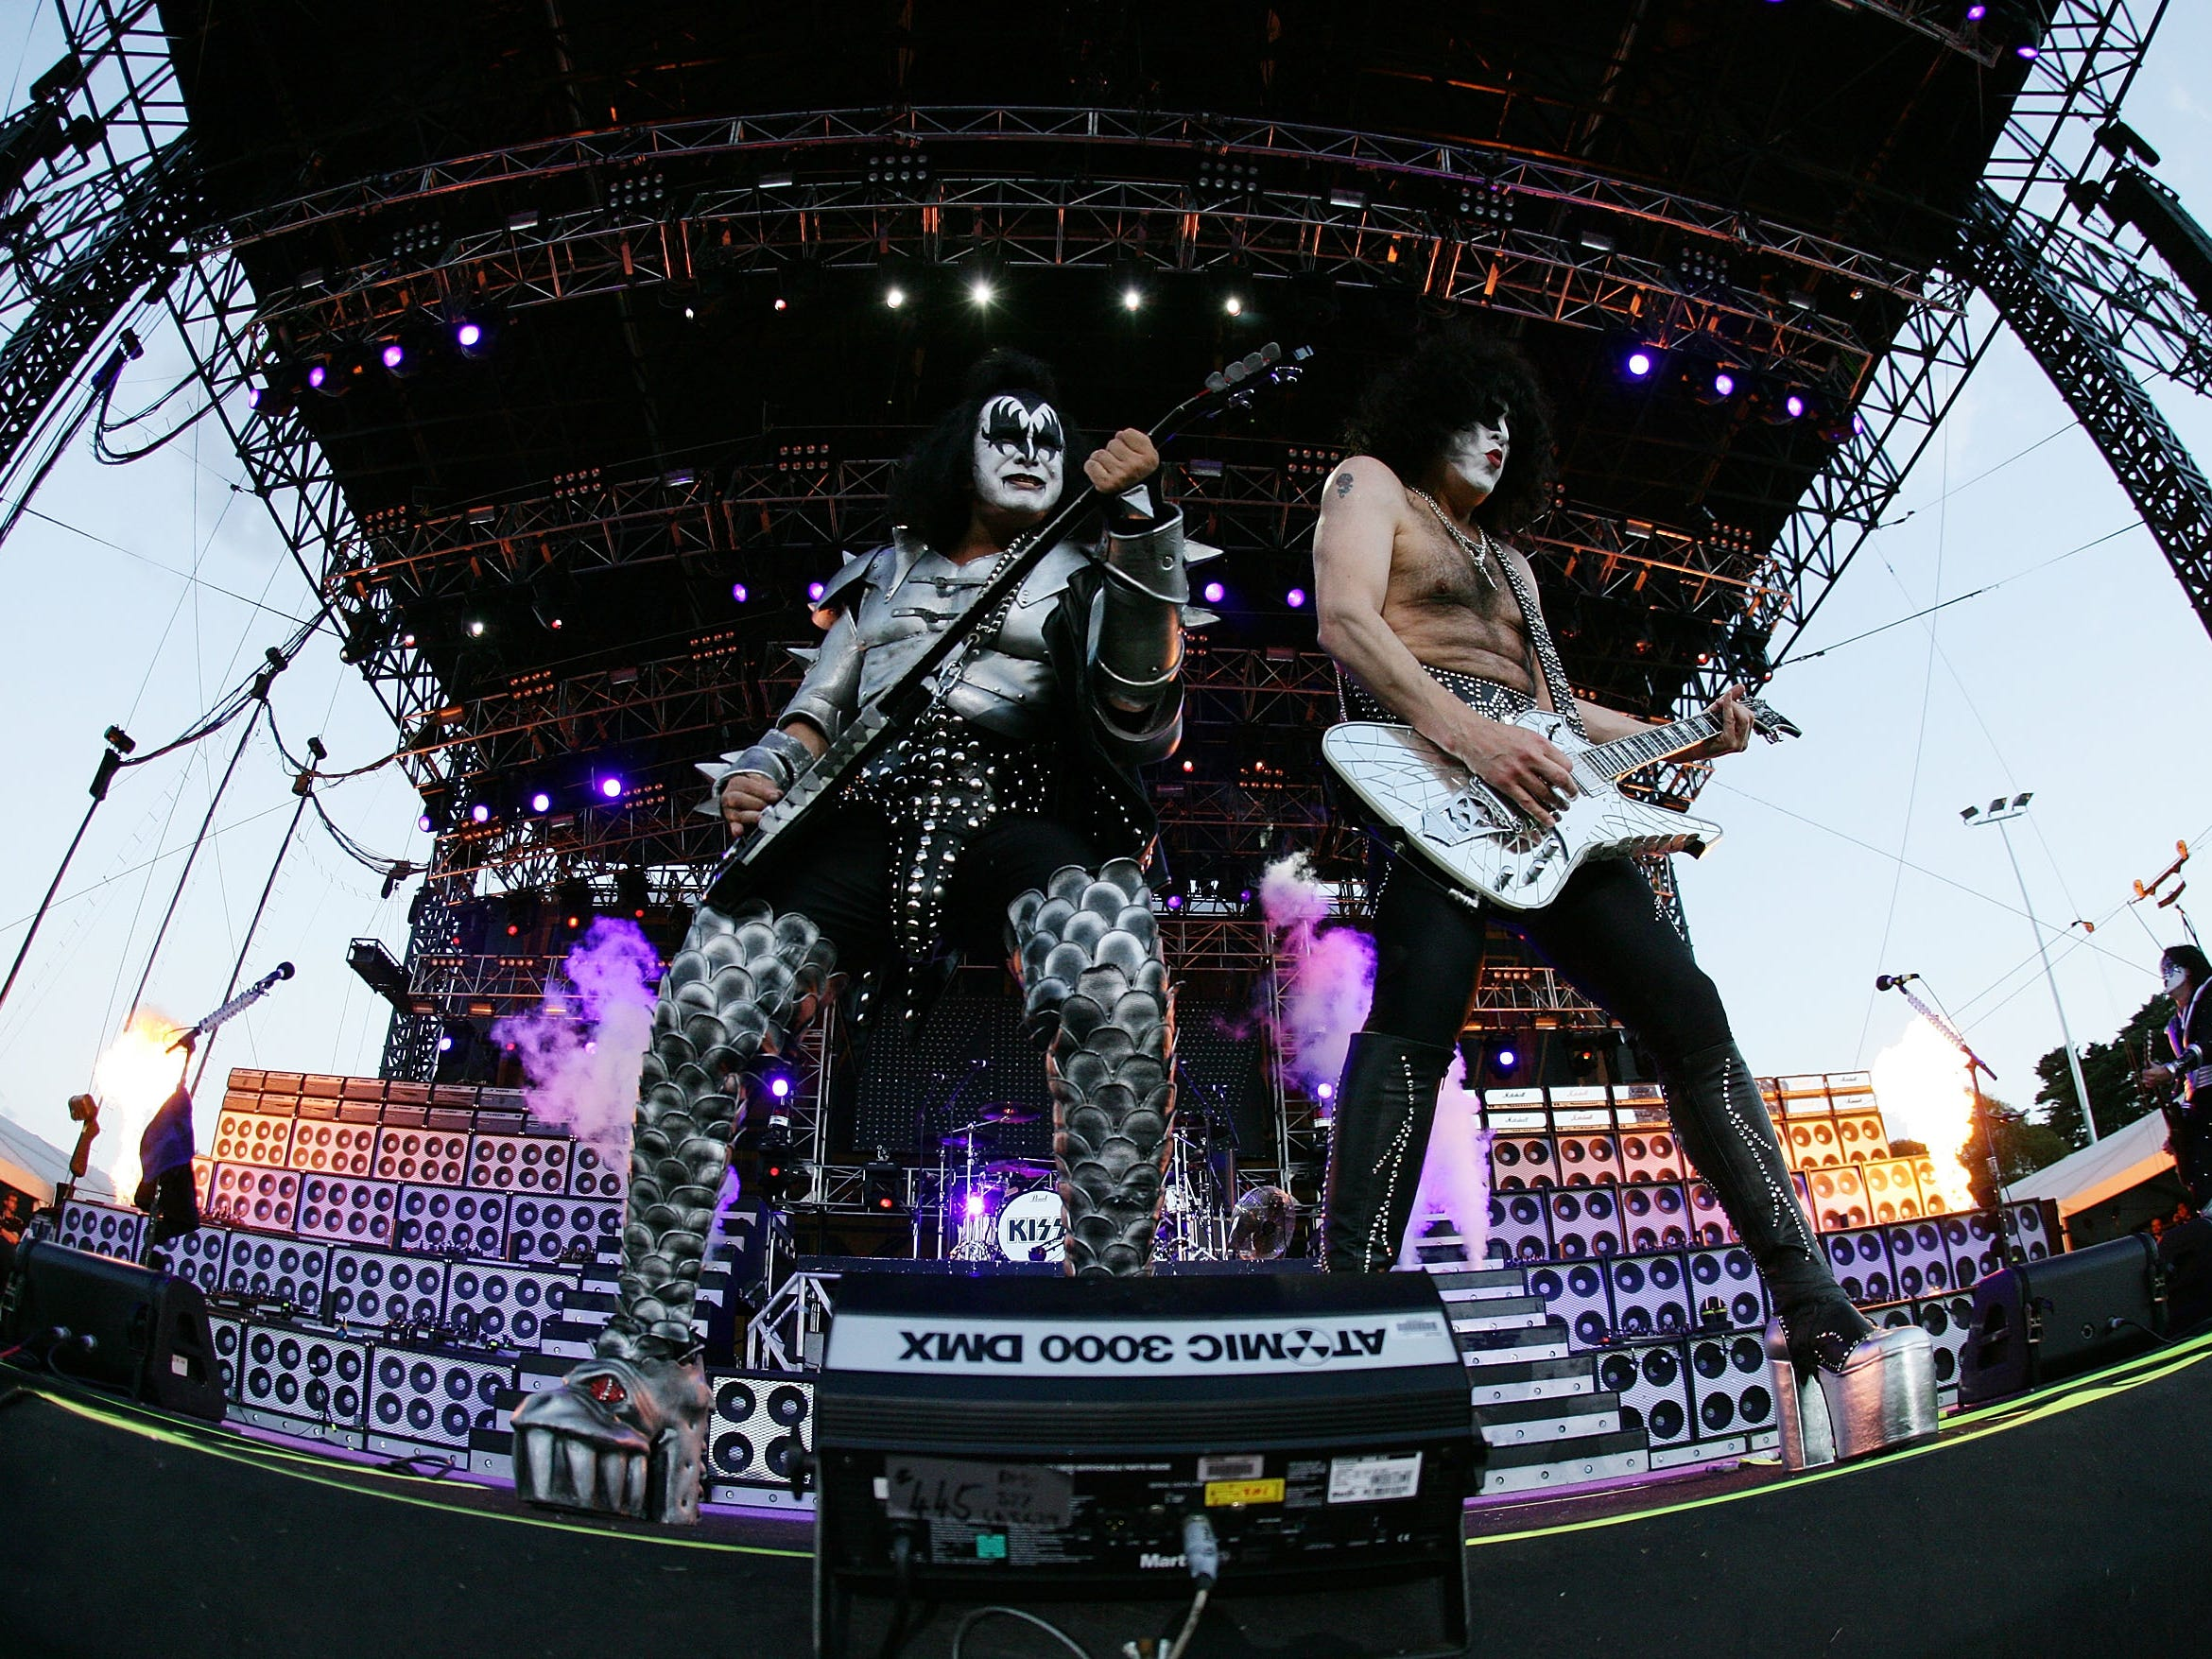 MELBOURNE, AUSTRALIA - MARCH 16:  Gene Simmons and Paul Stanley of Kiss perform on-stage for the first leg of their world tour following the Australian Formula One Grand Prix at the Albert Park Circuit on March 16, 2008 in Melbourne, Australia.  (Photo by Kristian Dowling/Getty Images)